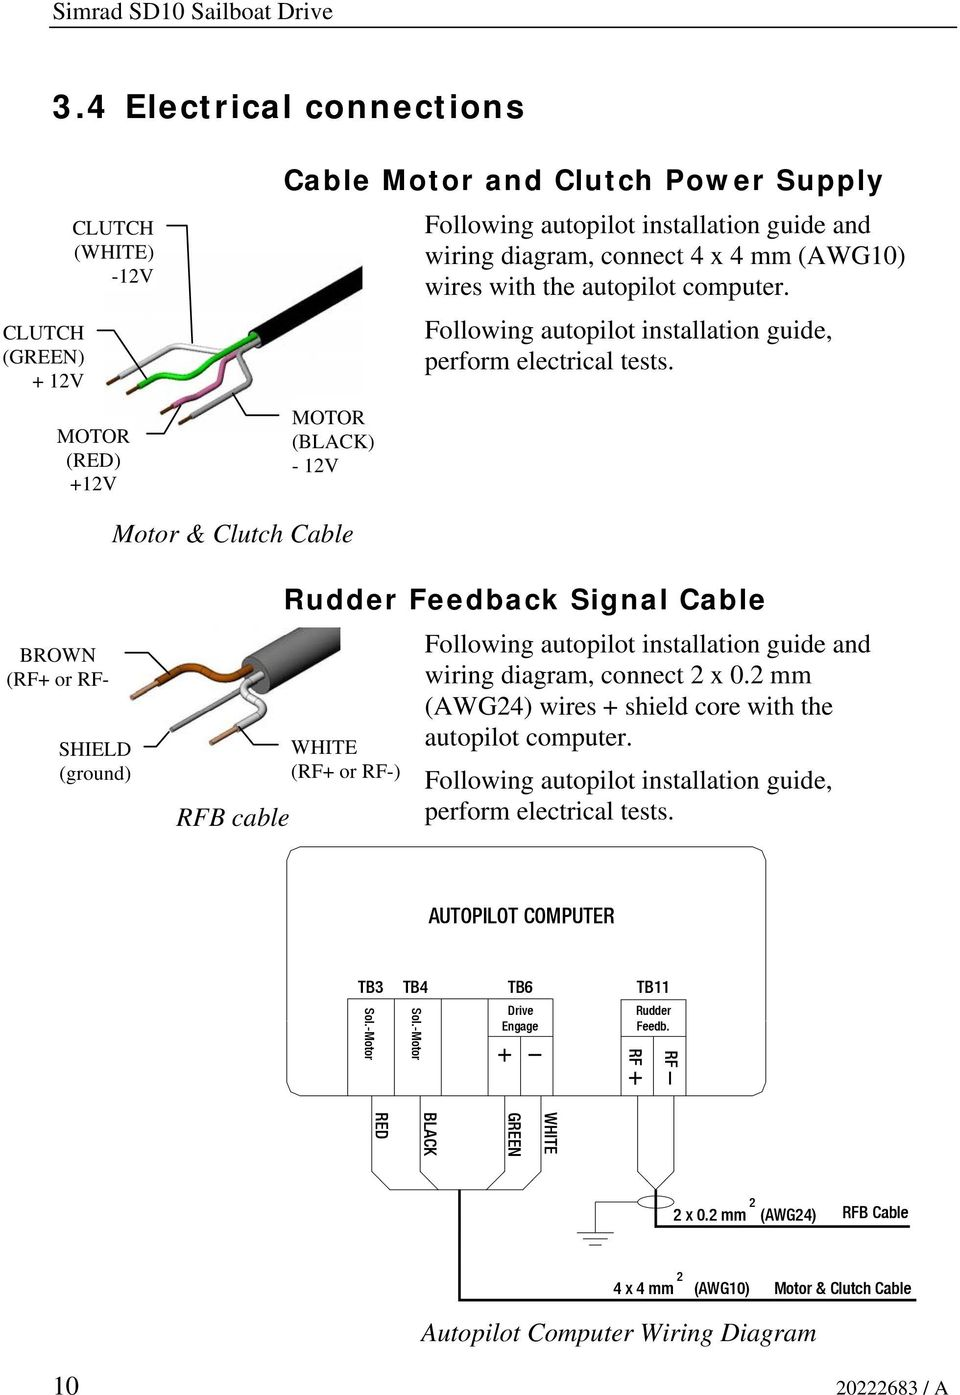 How To Connect Telephone Wires